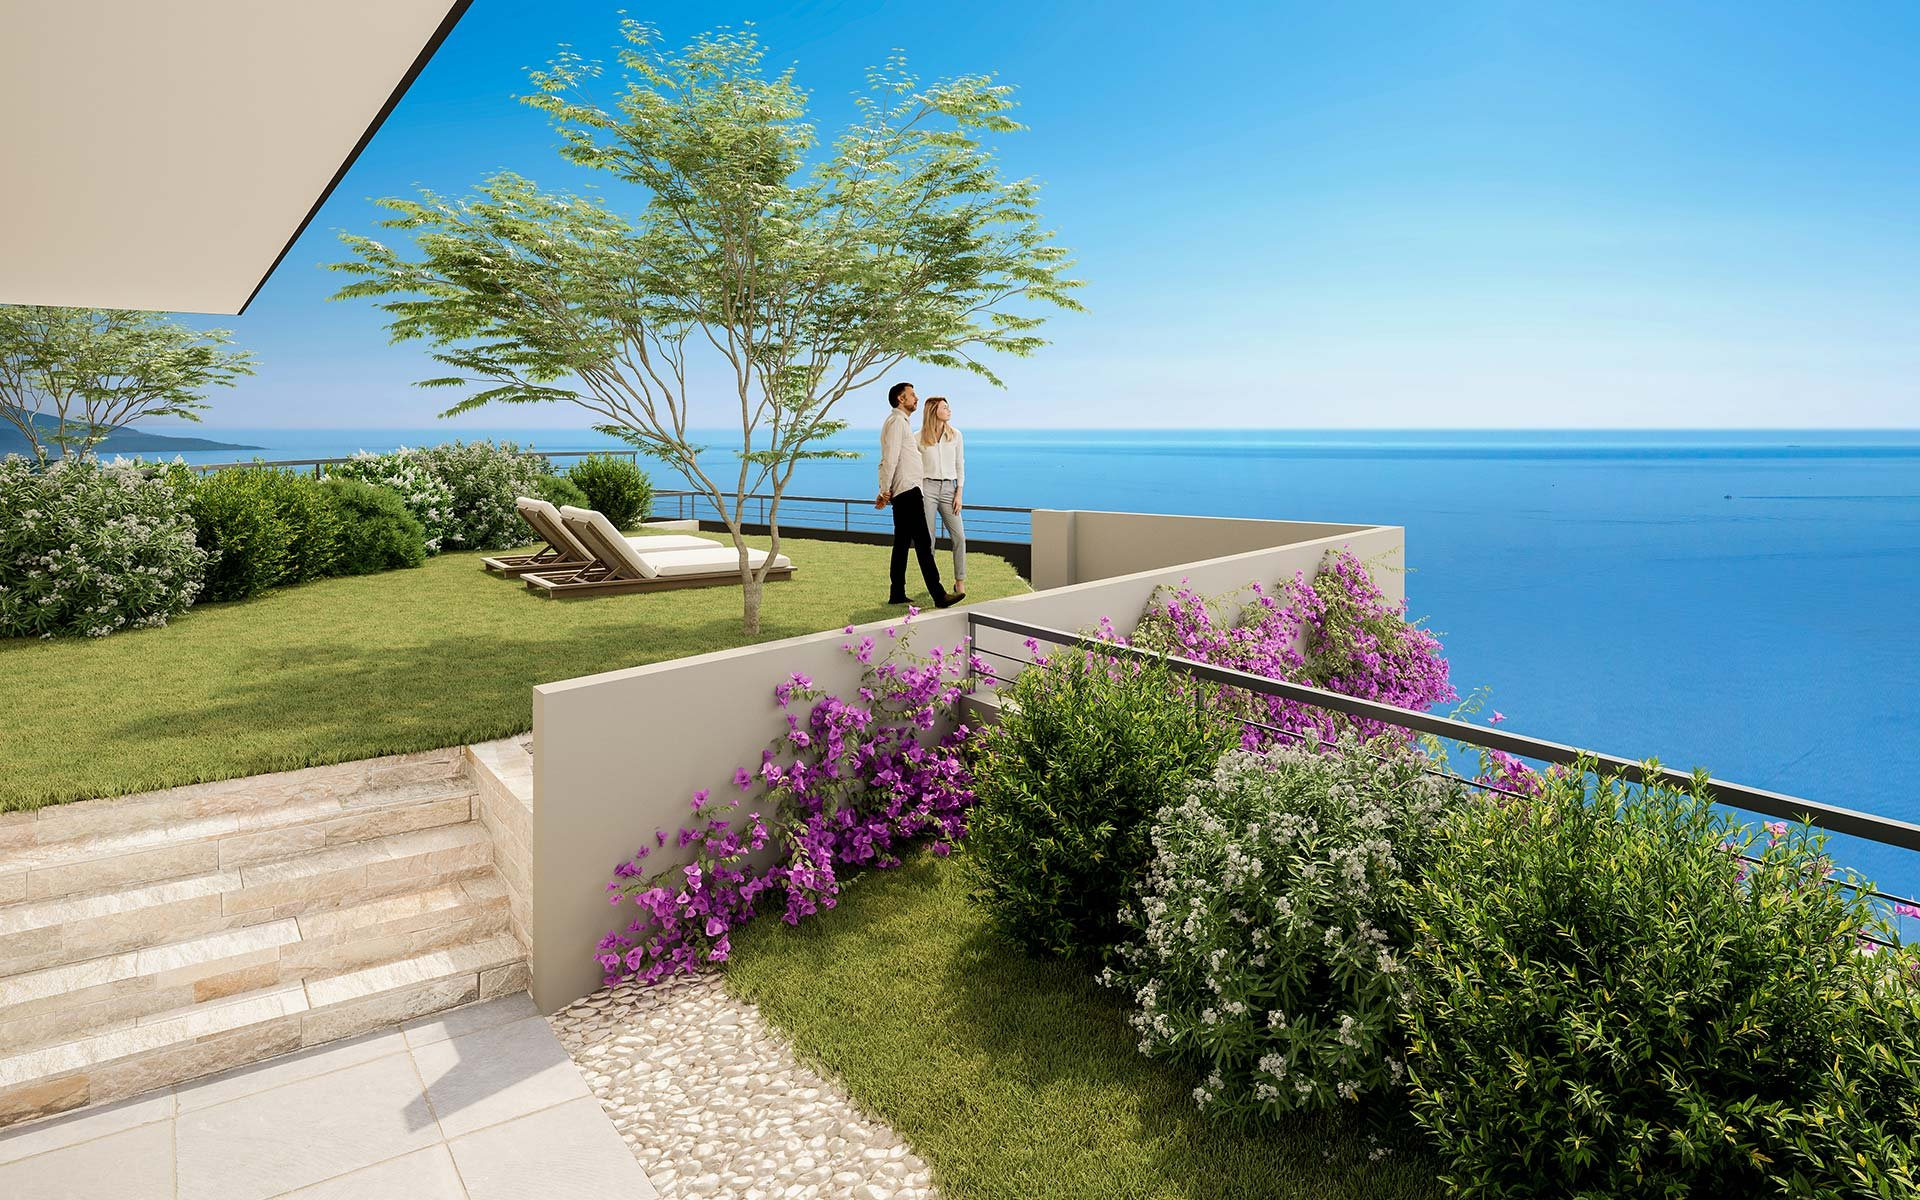 BEAUSOLEIL - French Riviera - 2 bed apartment with panoramic sea view - large terrace - swimming pool